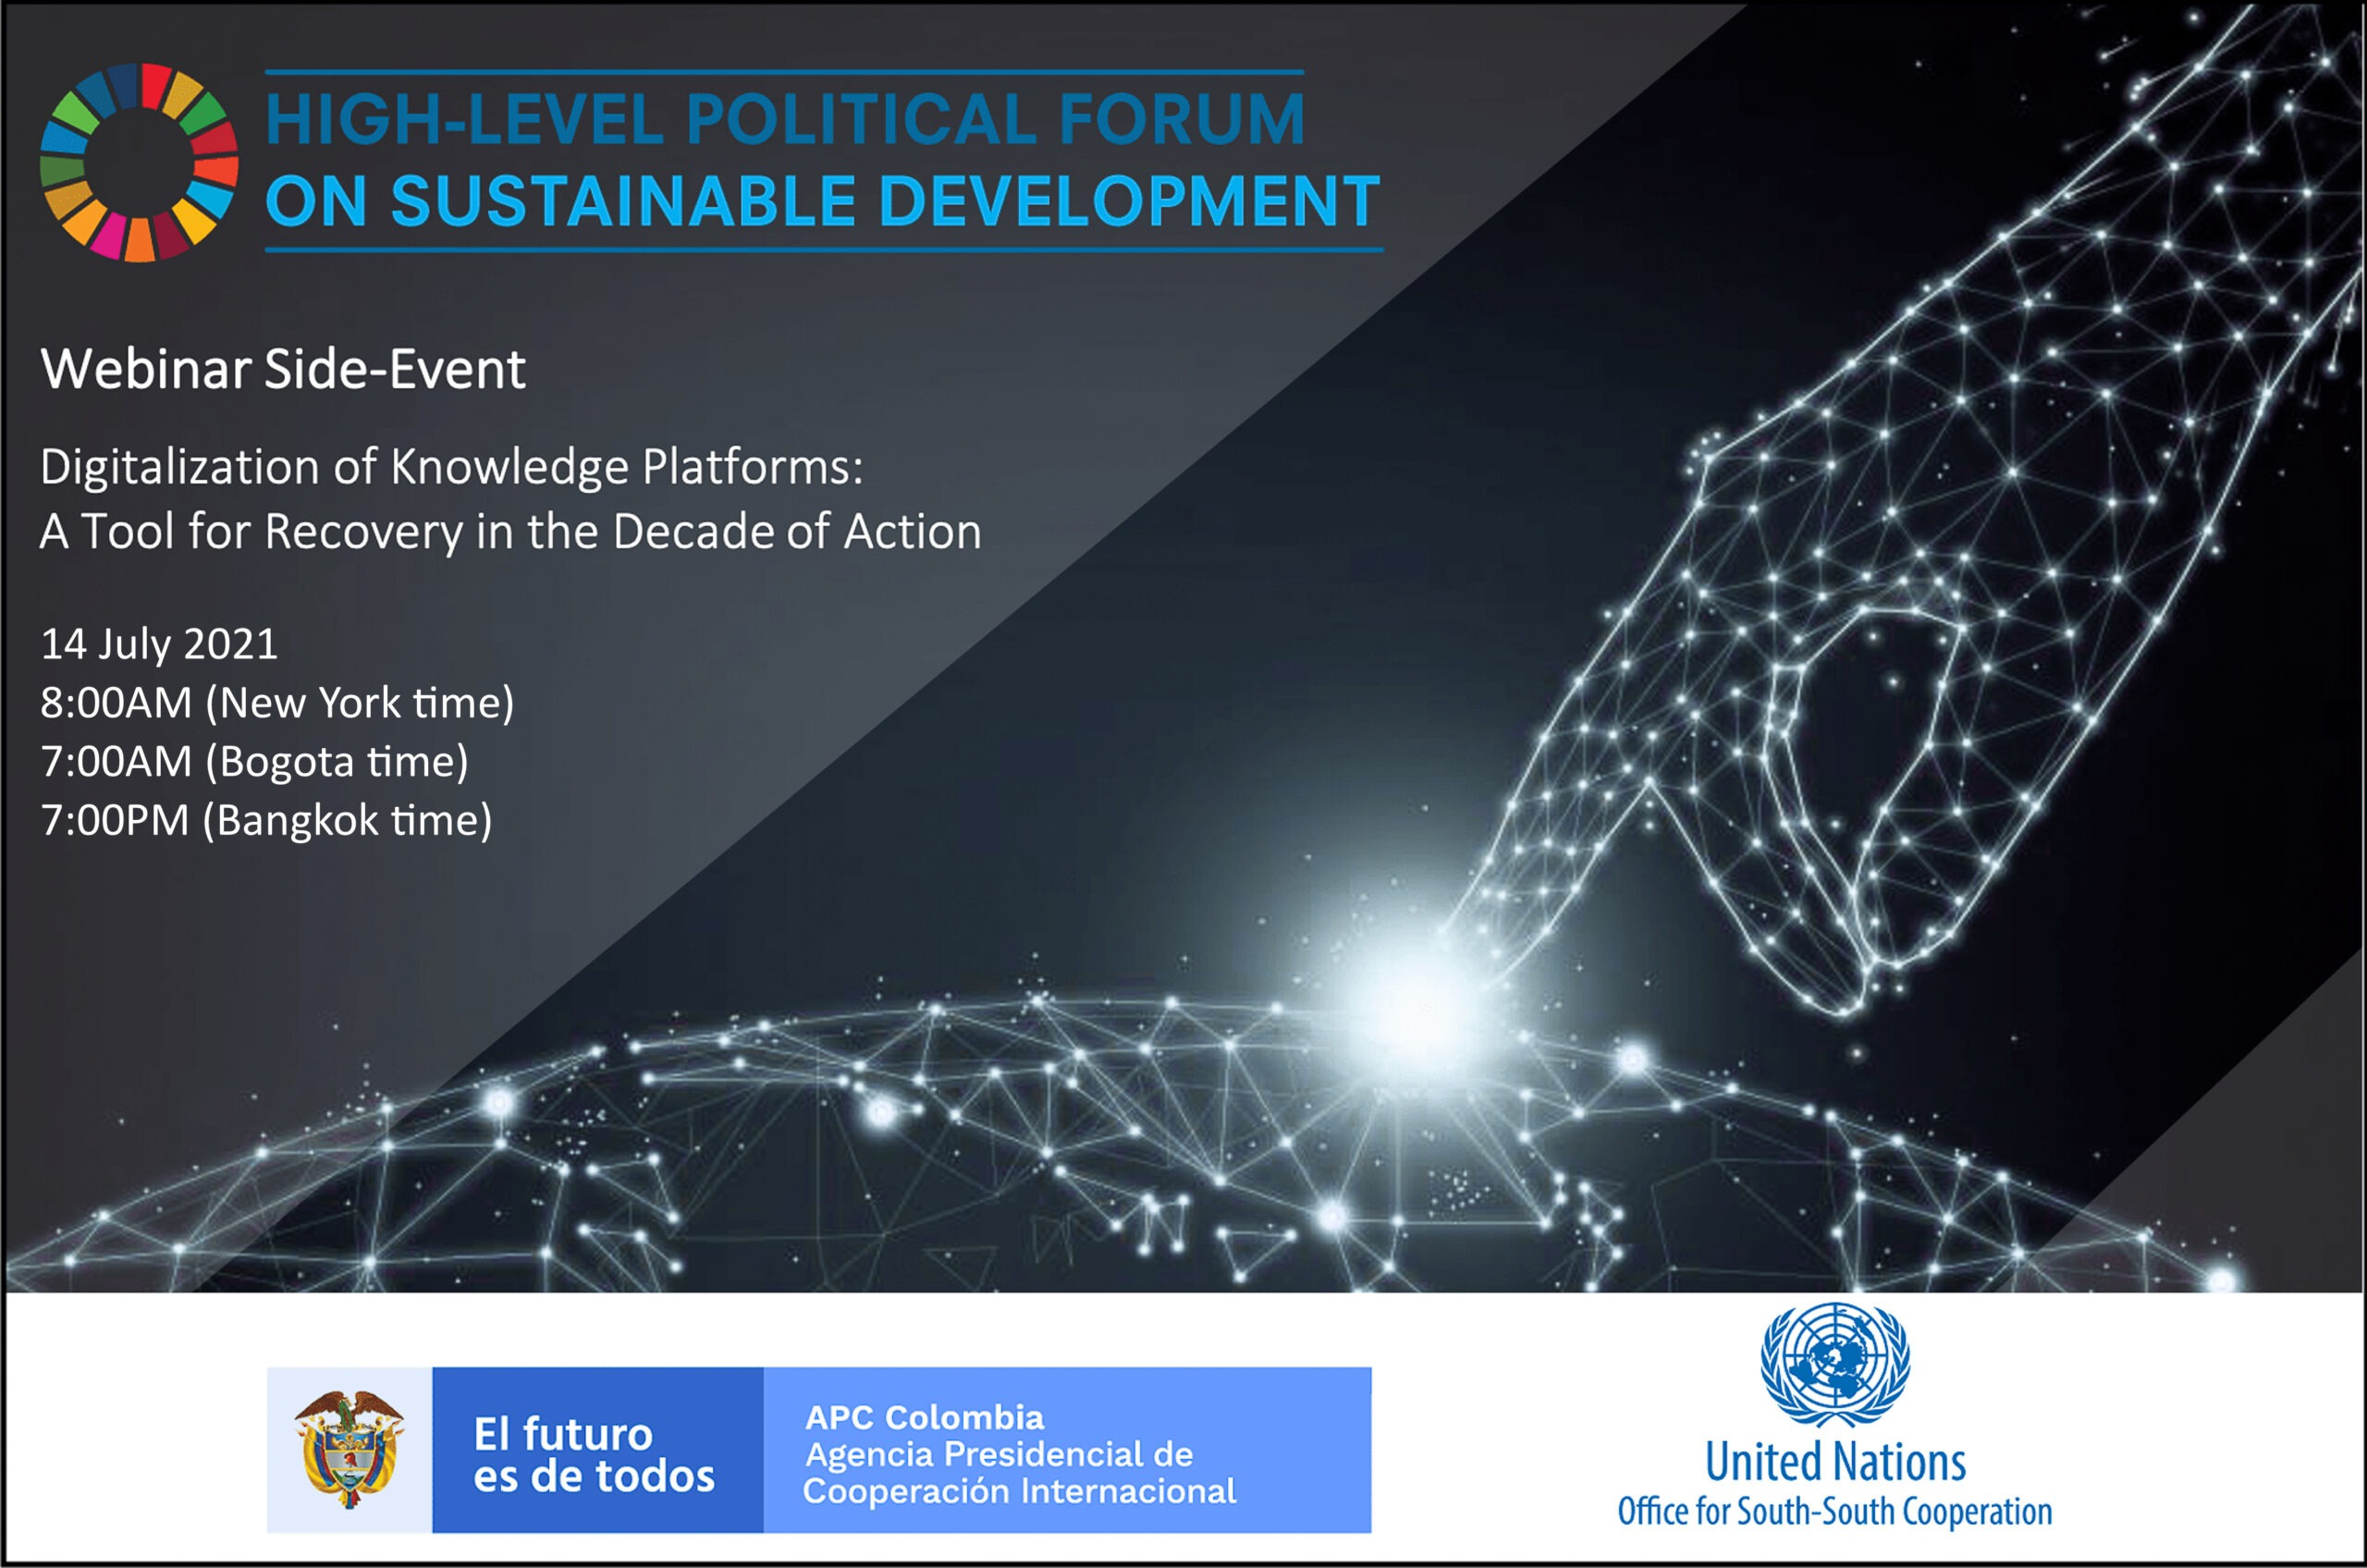 HLPF Side-event: Digitalization of Knowledge Platforms – A Tool for Recovery in the Decade of Action